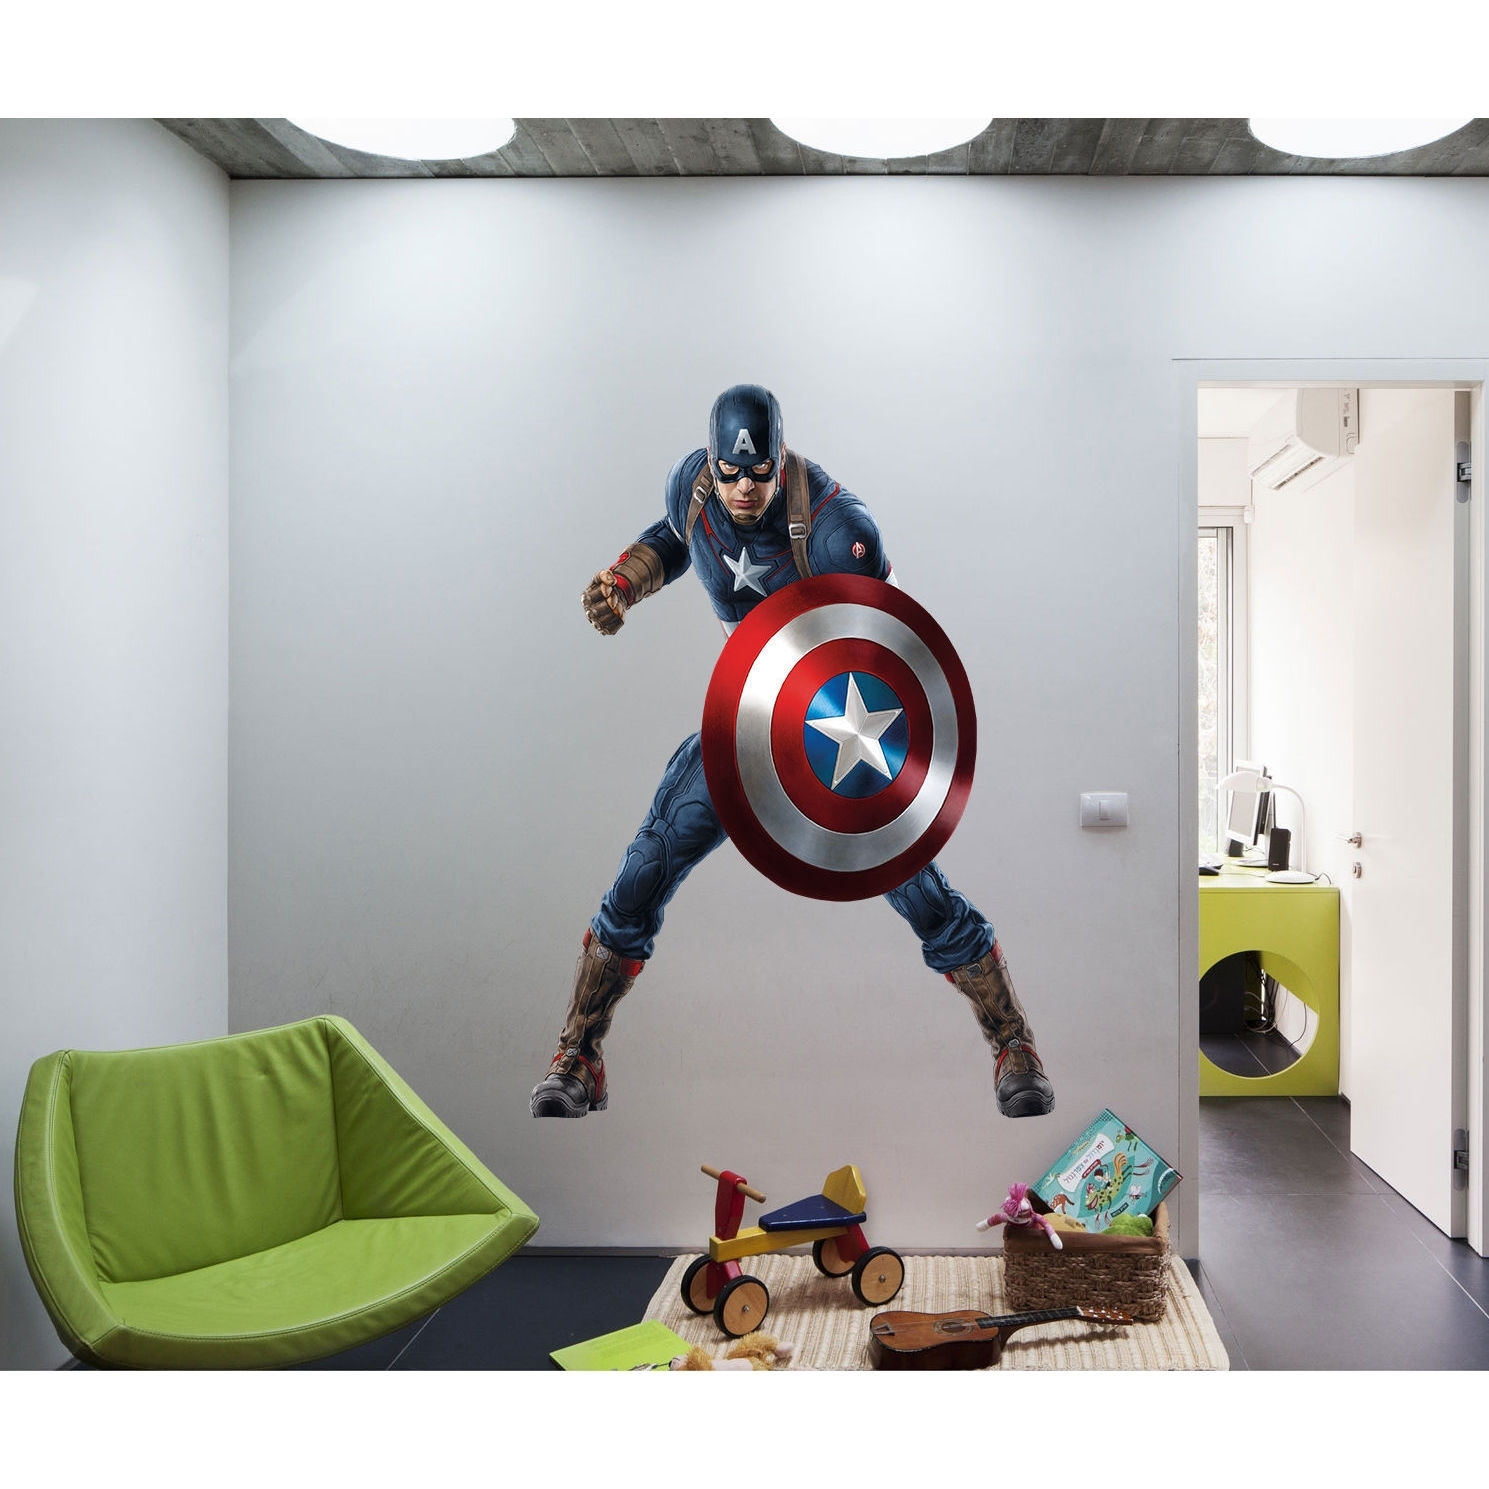 Shop Full Color Superhero Captain America Sticker, Decal, Wall Art Within Newest Captain America Wall Art (View 8 of 15)